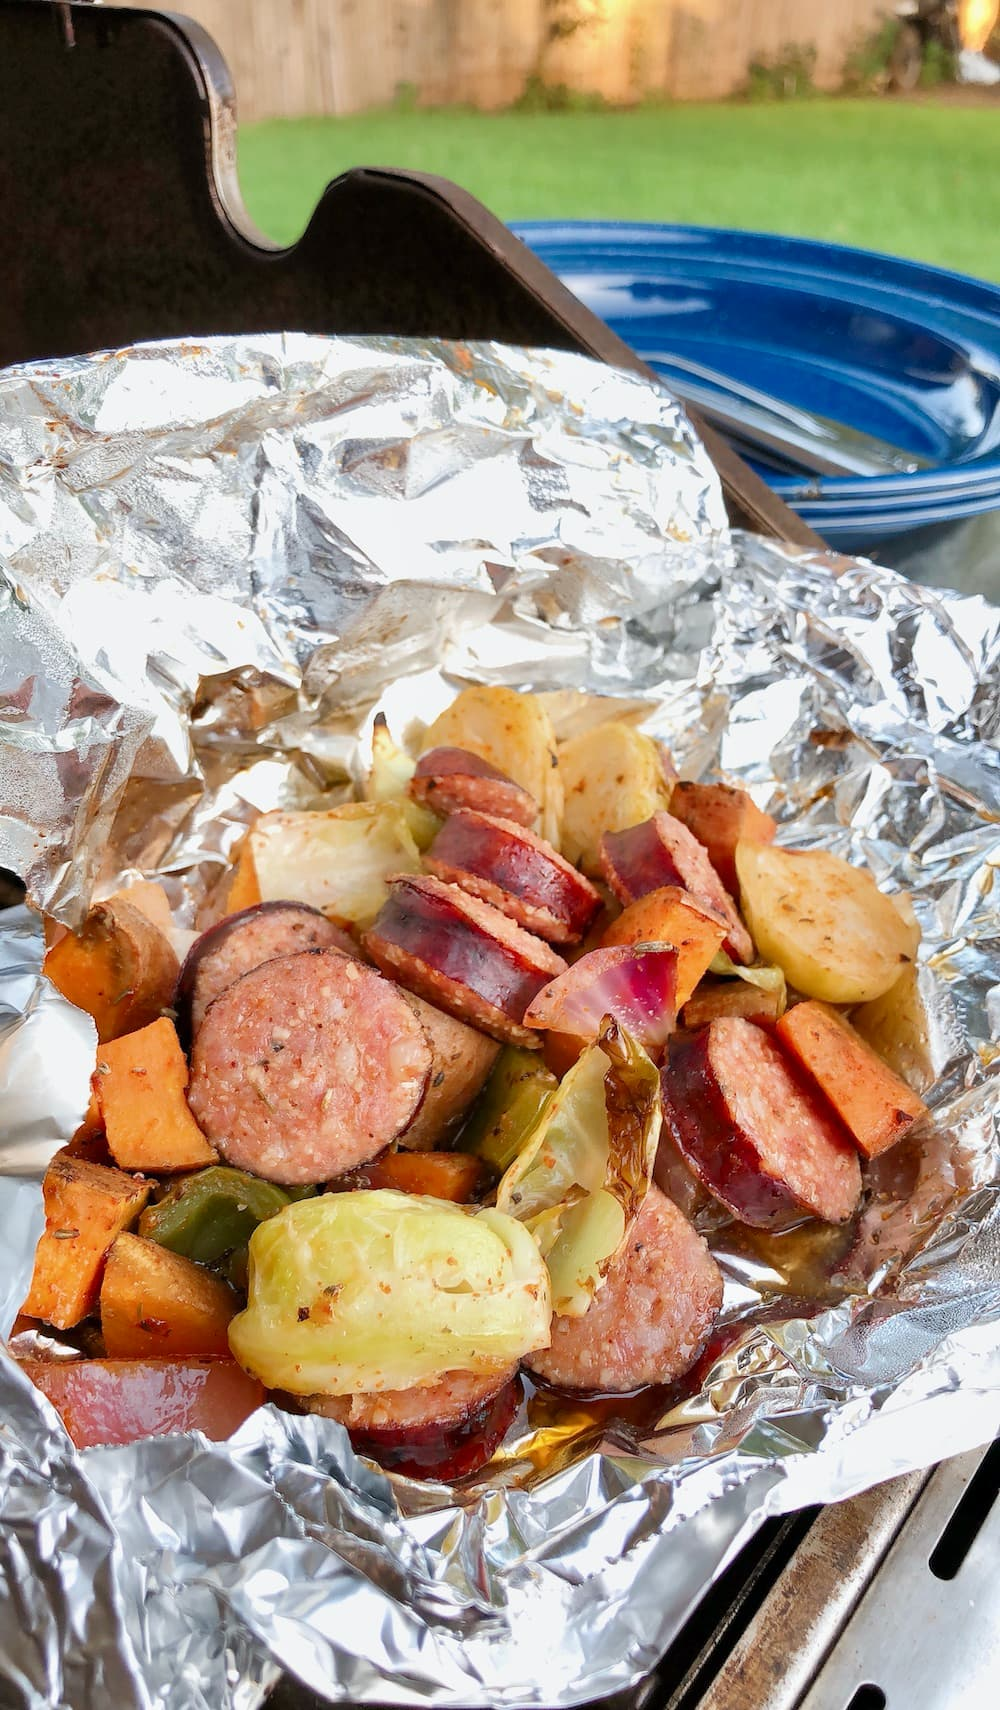 foil meal with sausage and veggies on grill